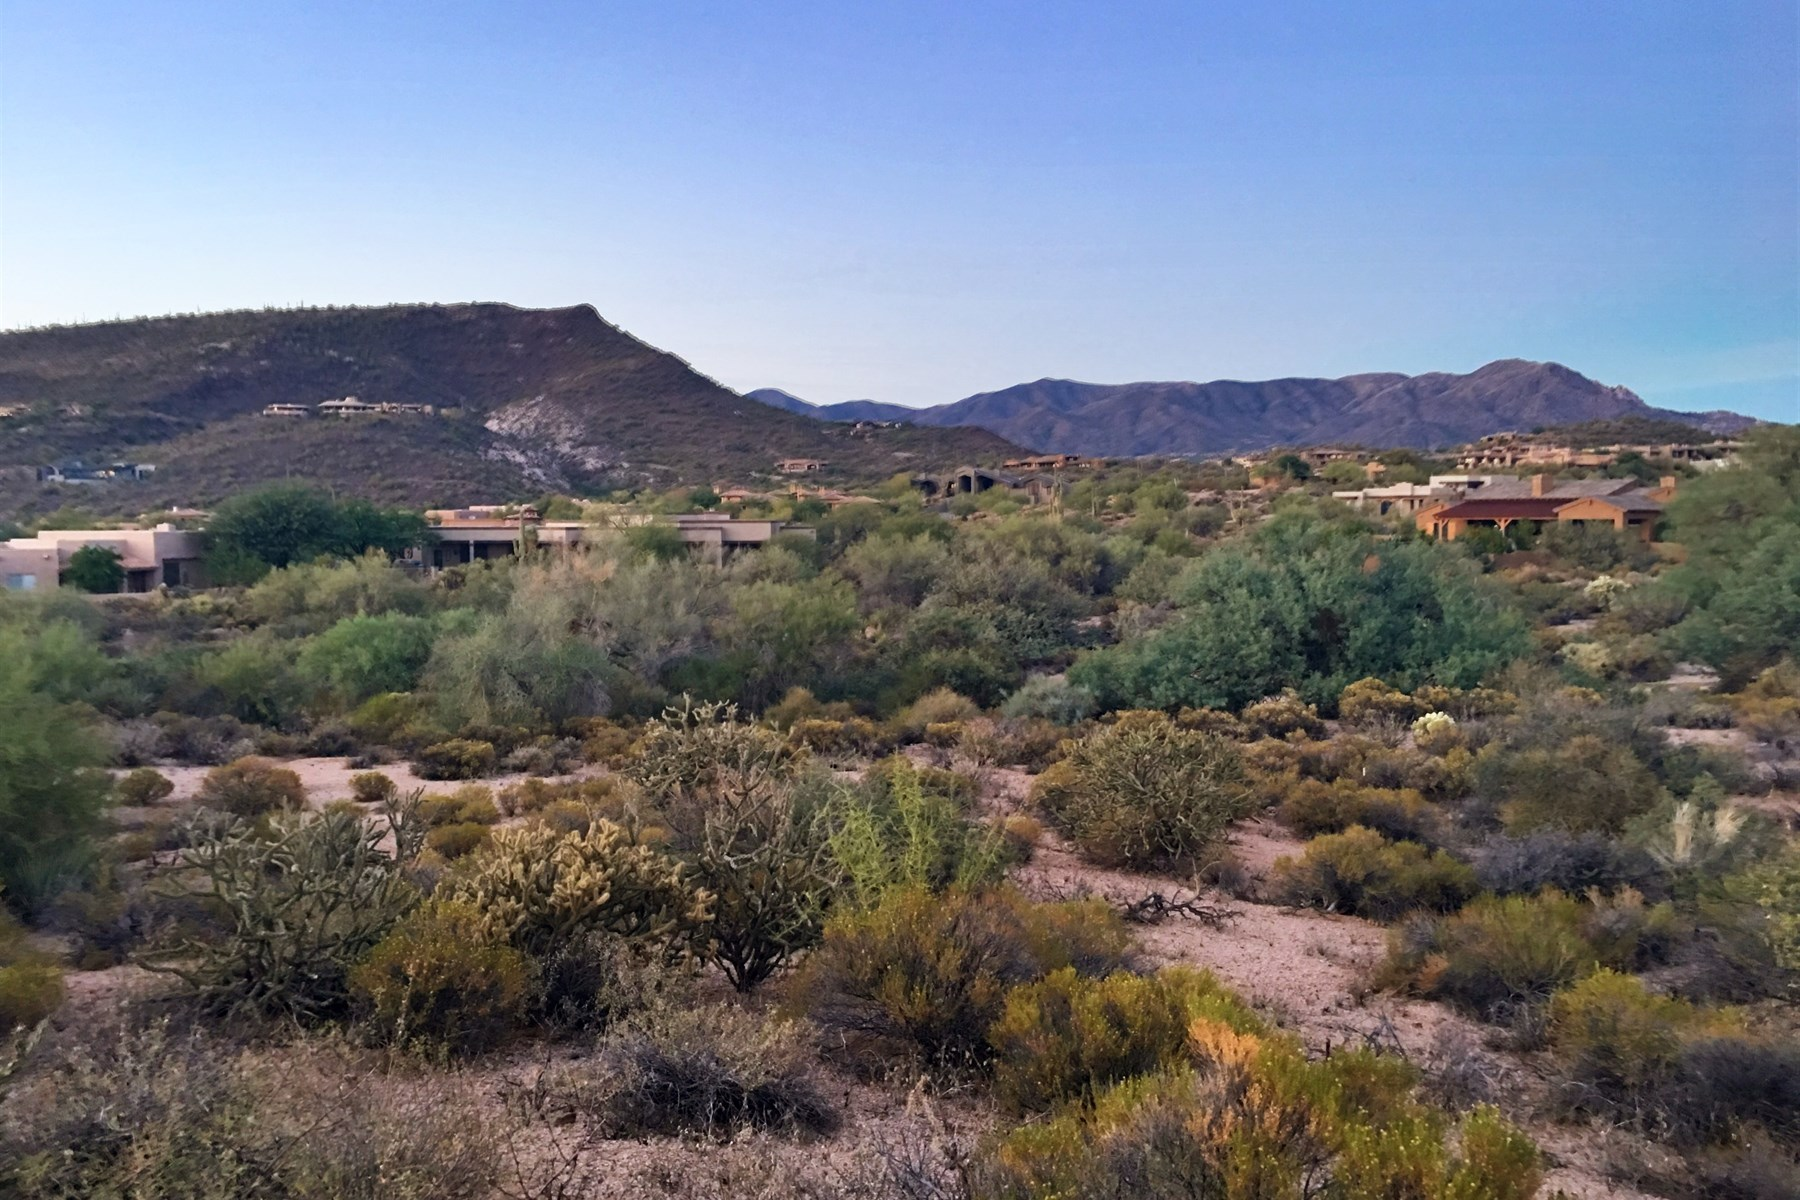 土地,用地 为 销售 在 Non membership homesite in Desert Mountain's Village of Gambel Quail 9556 E Celestial Dr #62, 斯科茨代尔, 亚利桑那州, 85262 美国